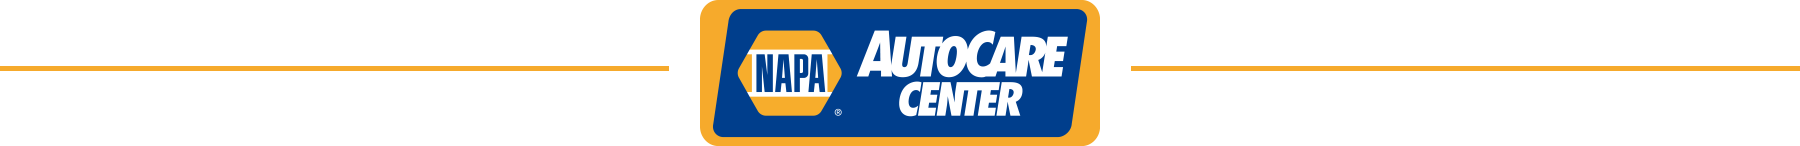 Connecticut Napa Auto Care Center